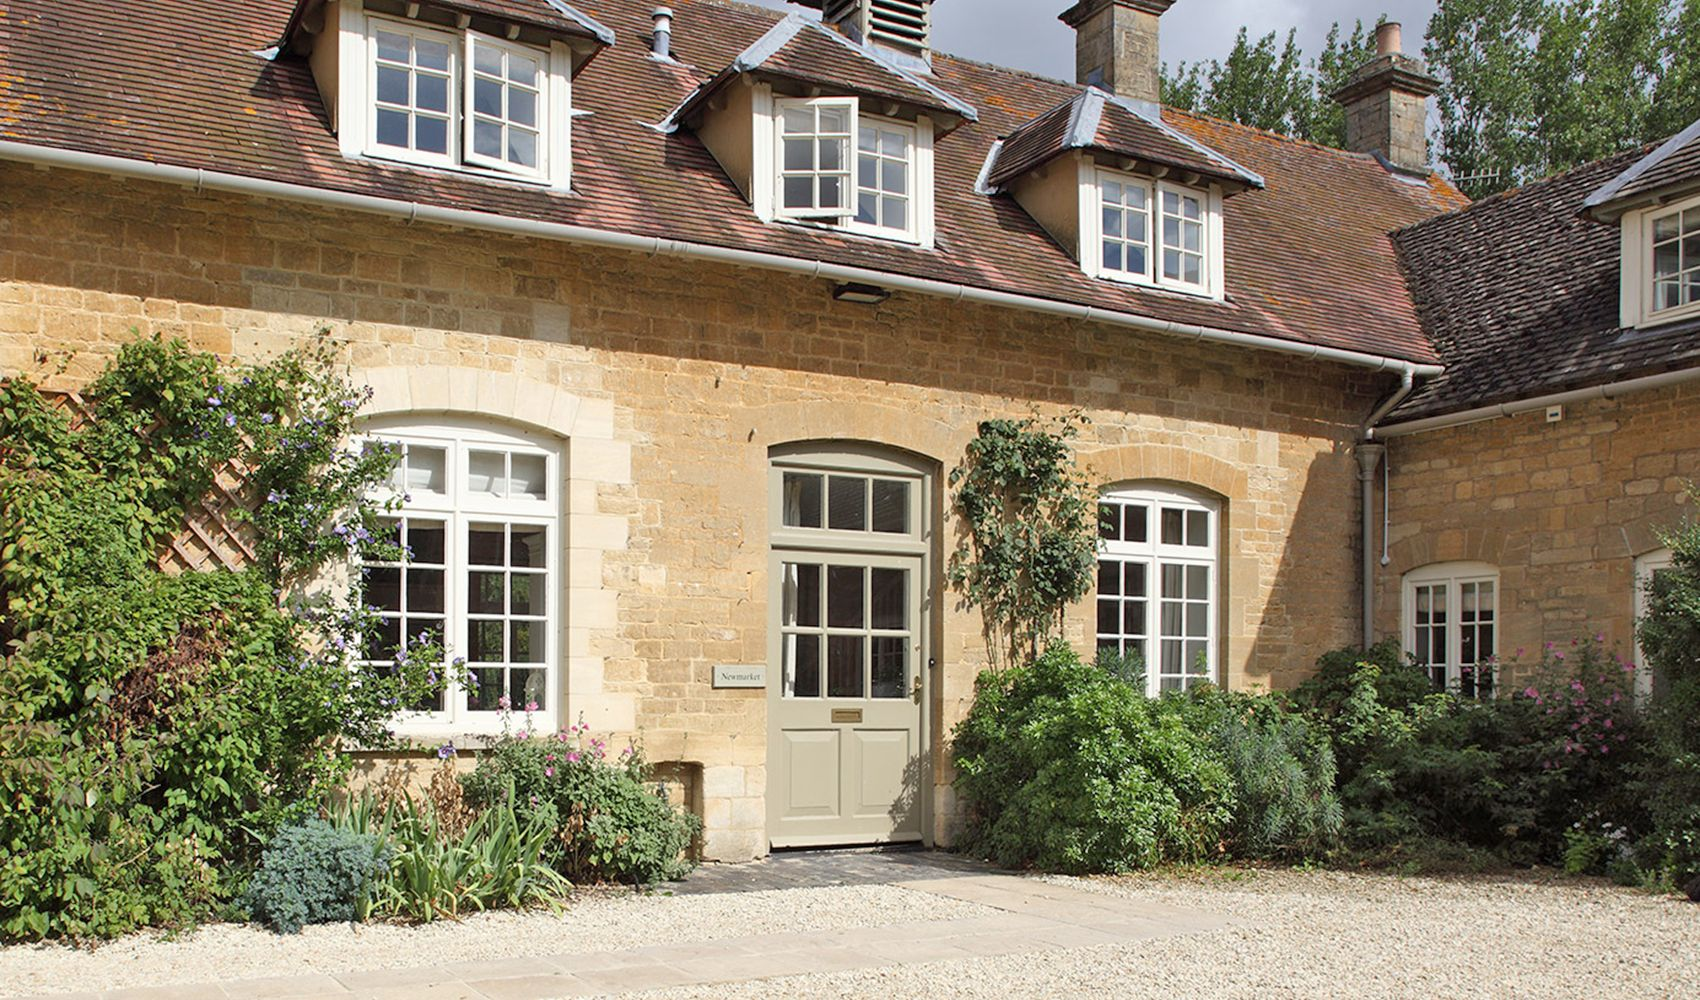 Newmarket Cottage, sleeping 8, is situated in Bruern's courtyard